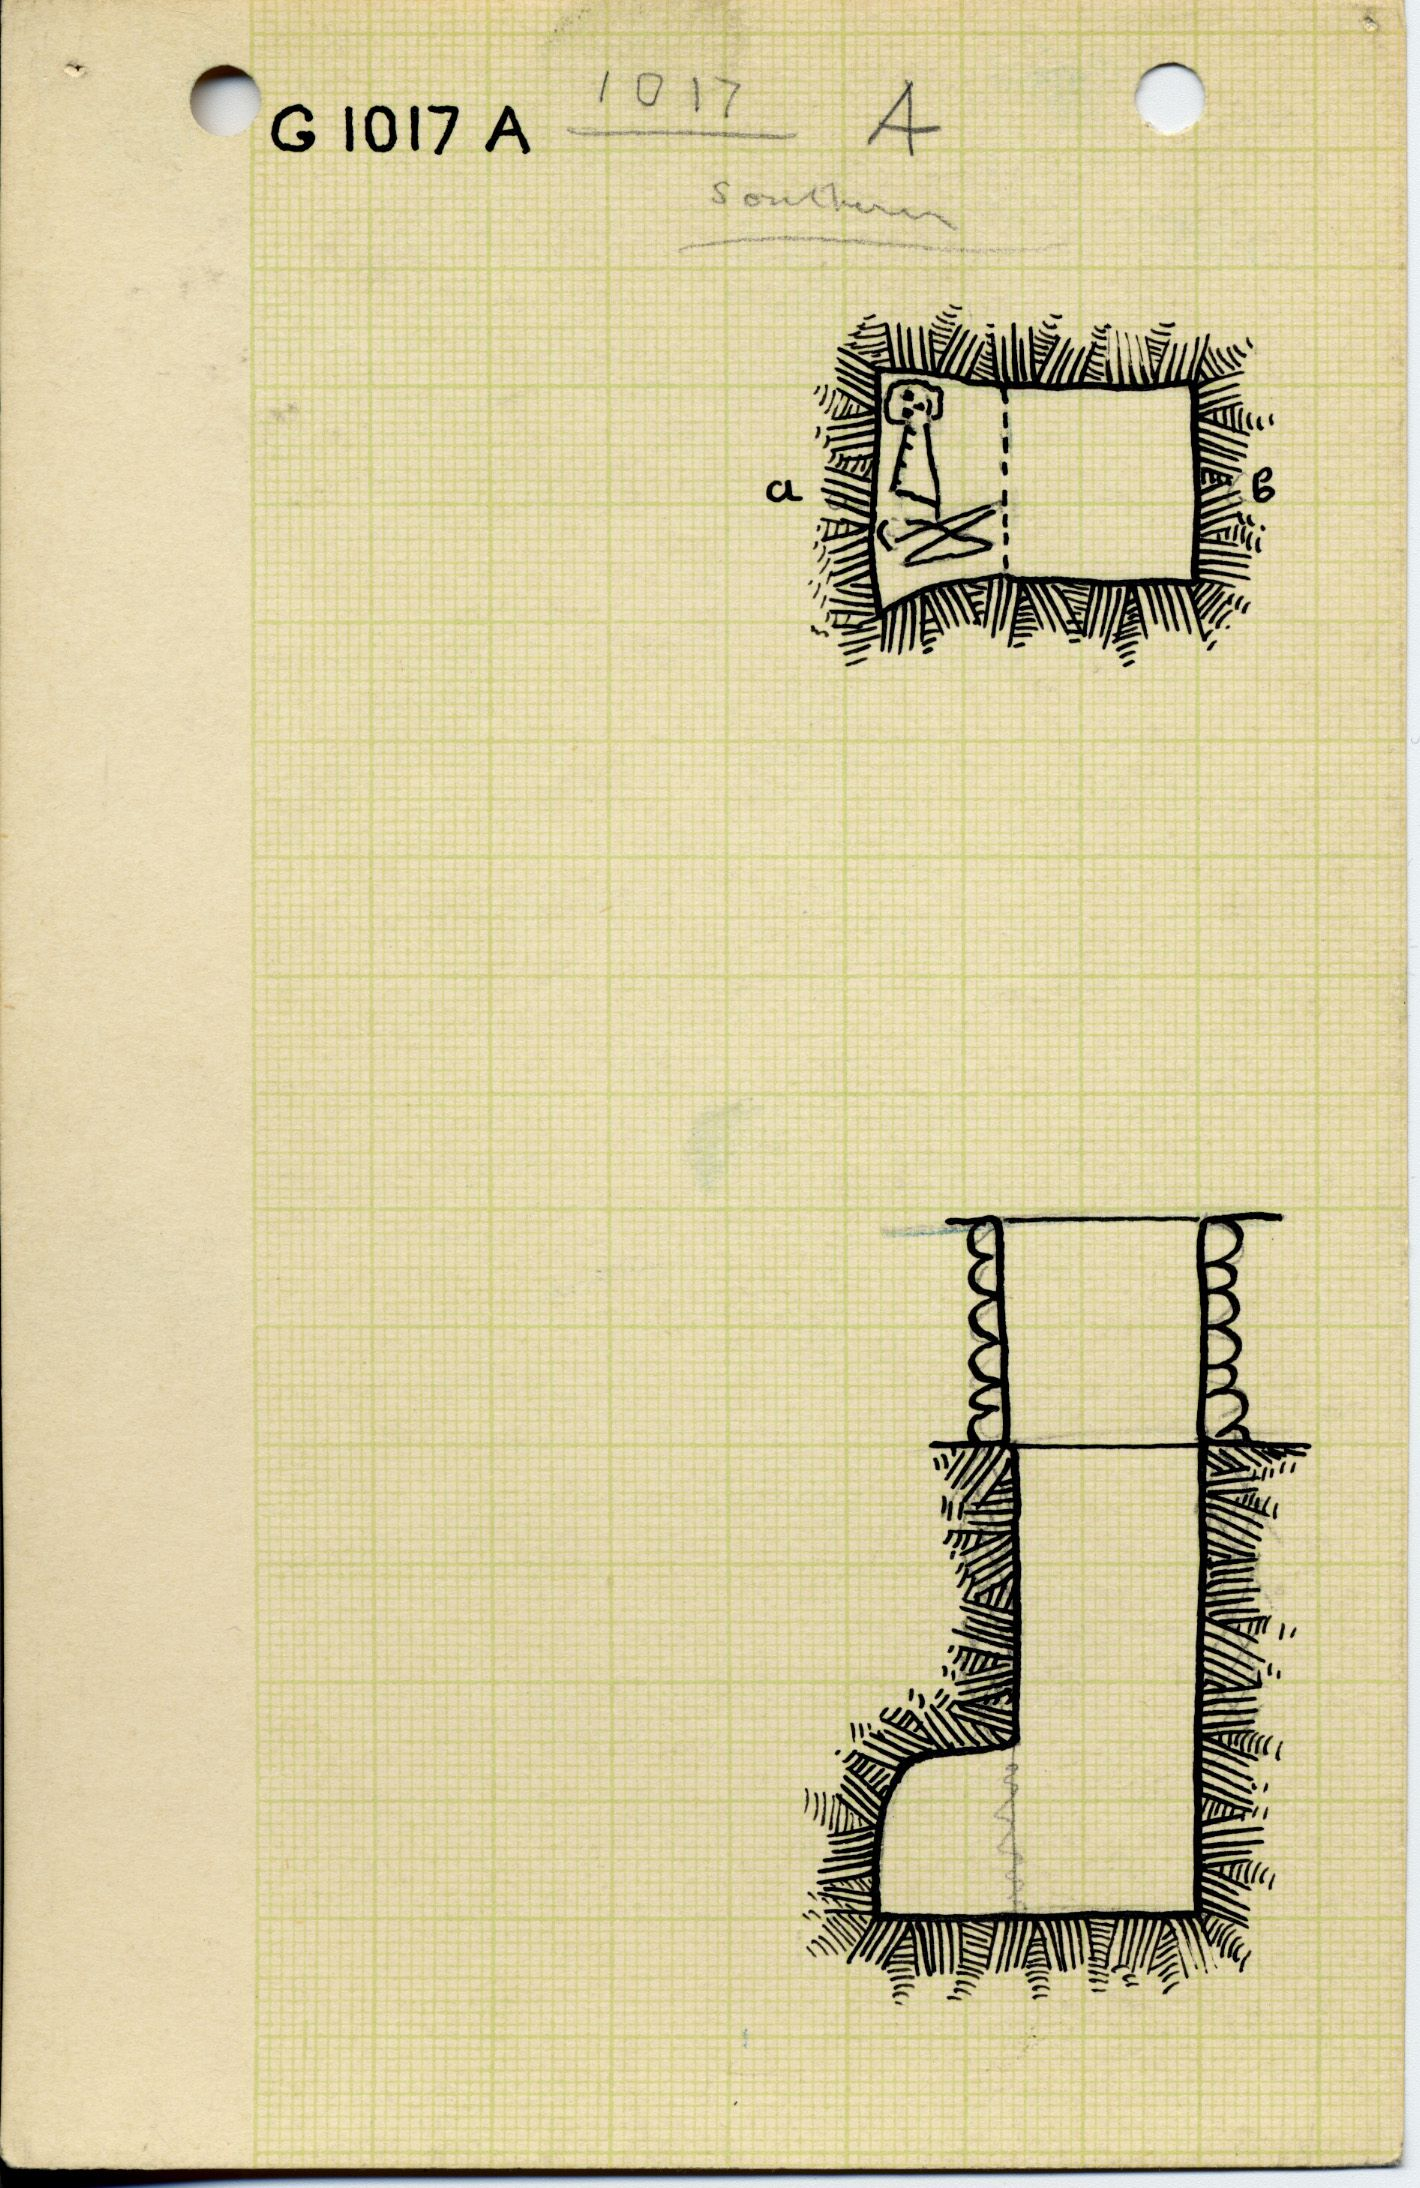 Maps and plans: G 1017, Shaft A